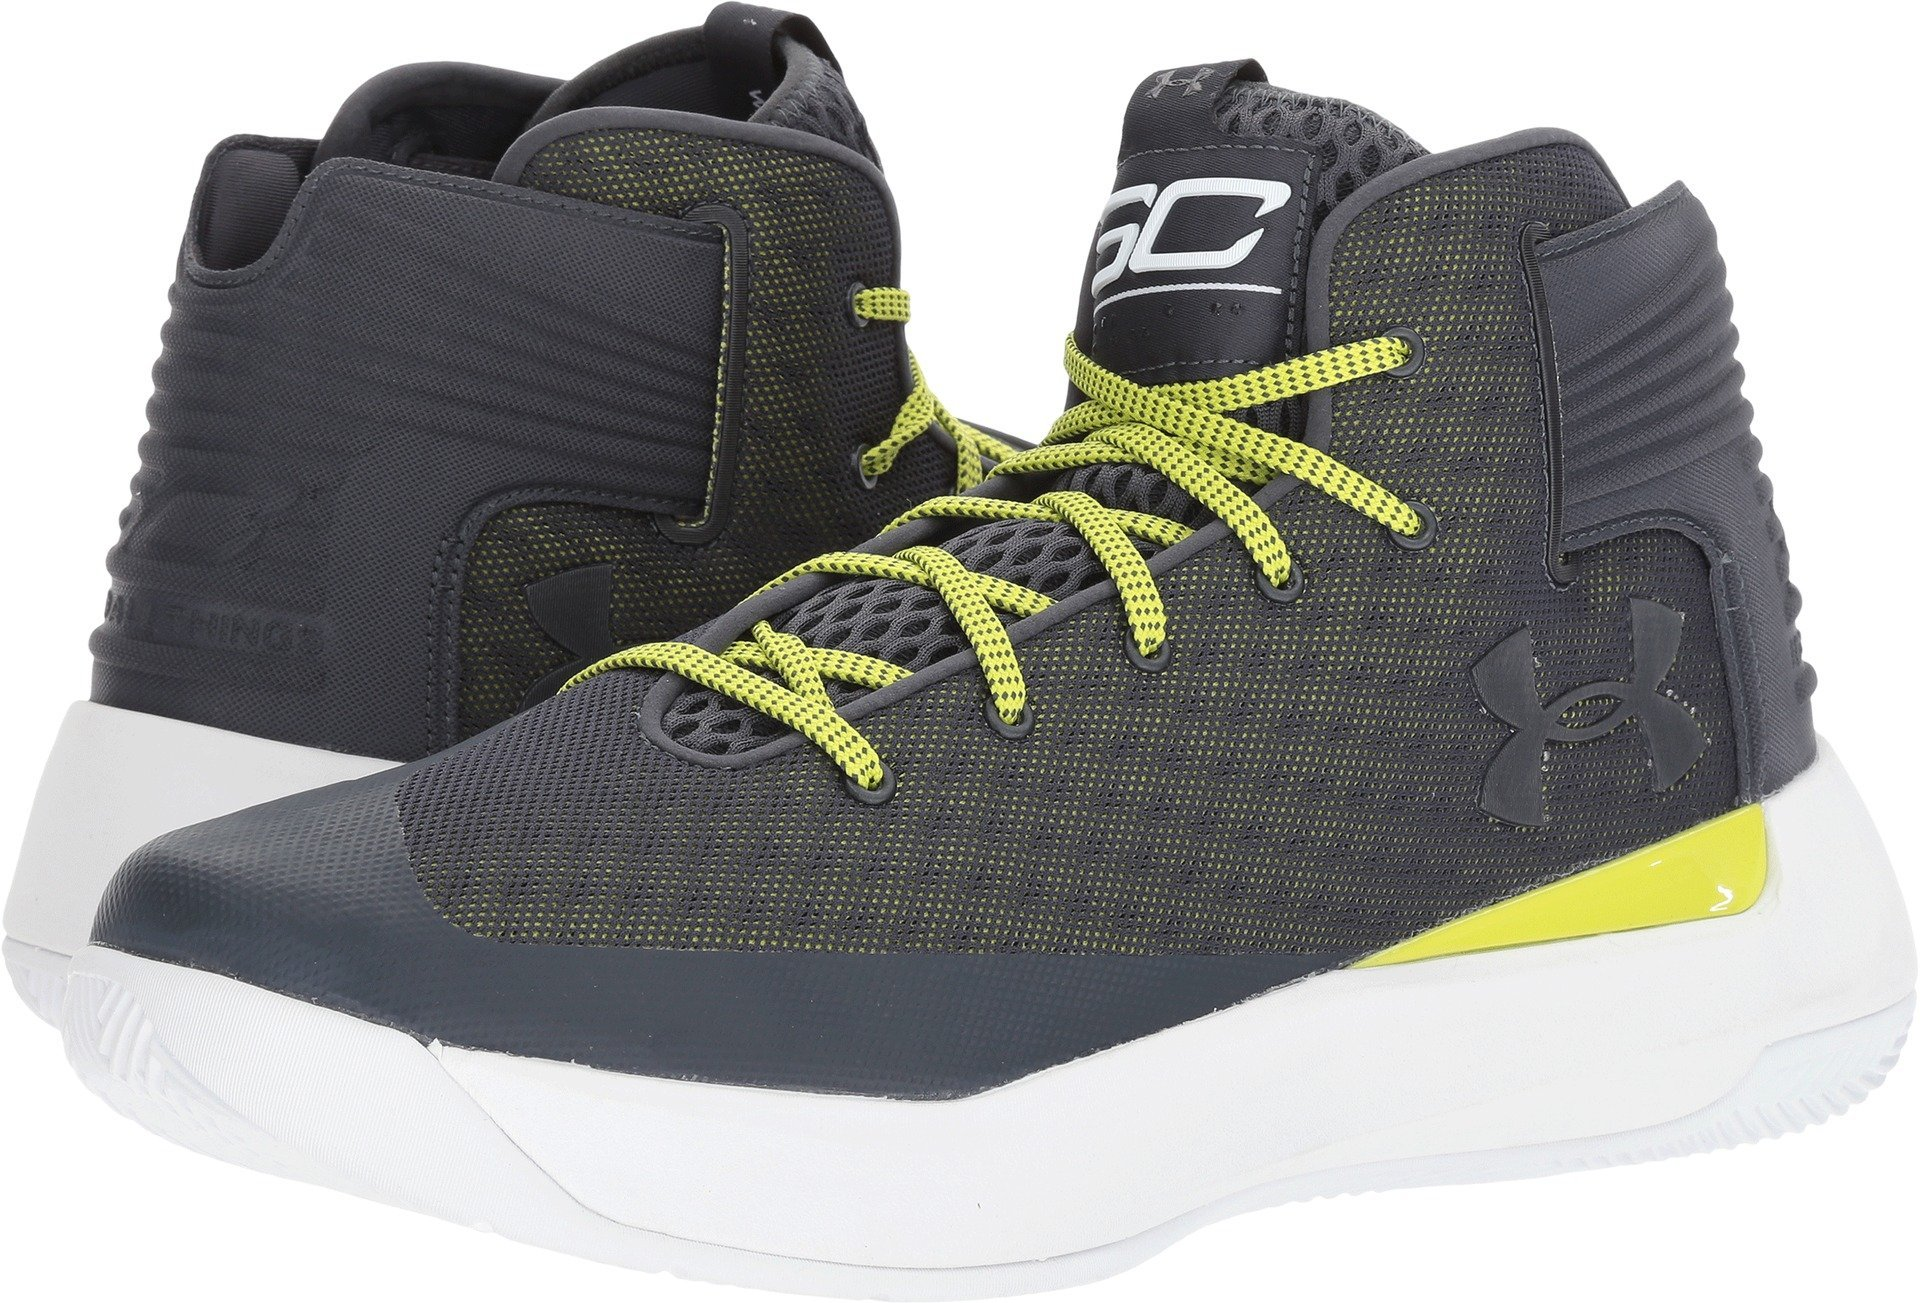 22cd7a22abaa Galleon - Under Armour Men s UA SC 3Zero Stealth Gray White Stealth Gray  12.5 D US